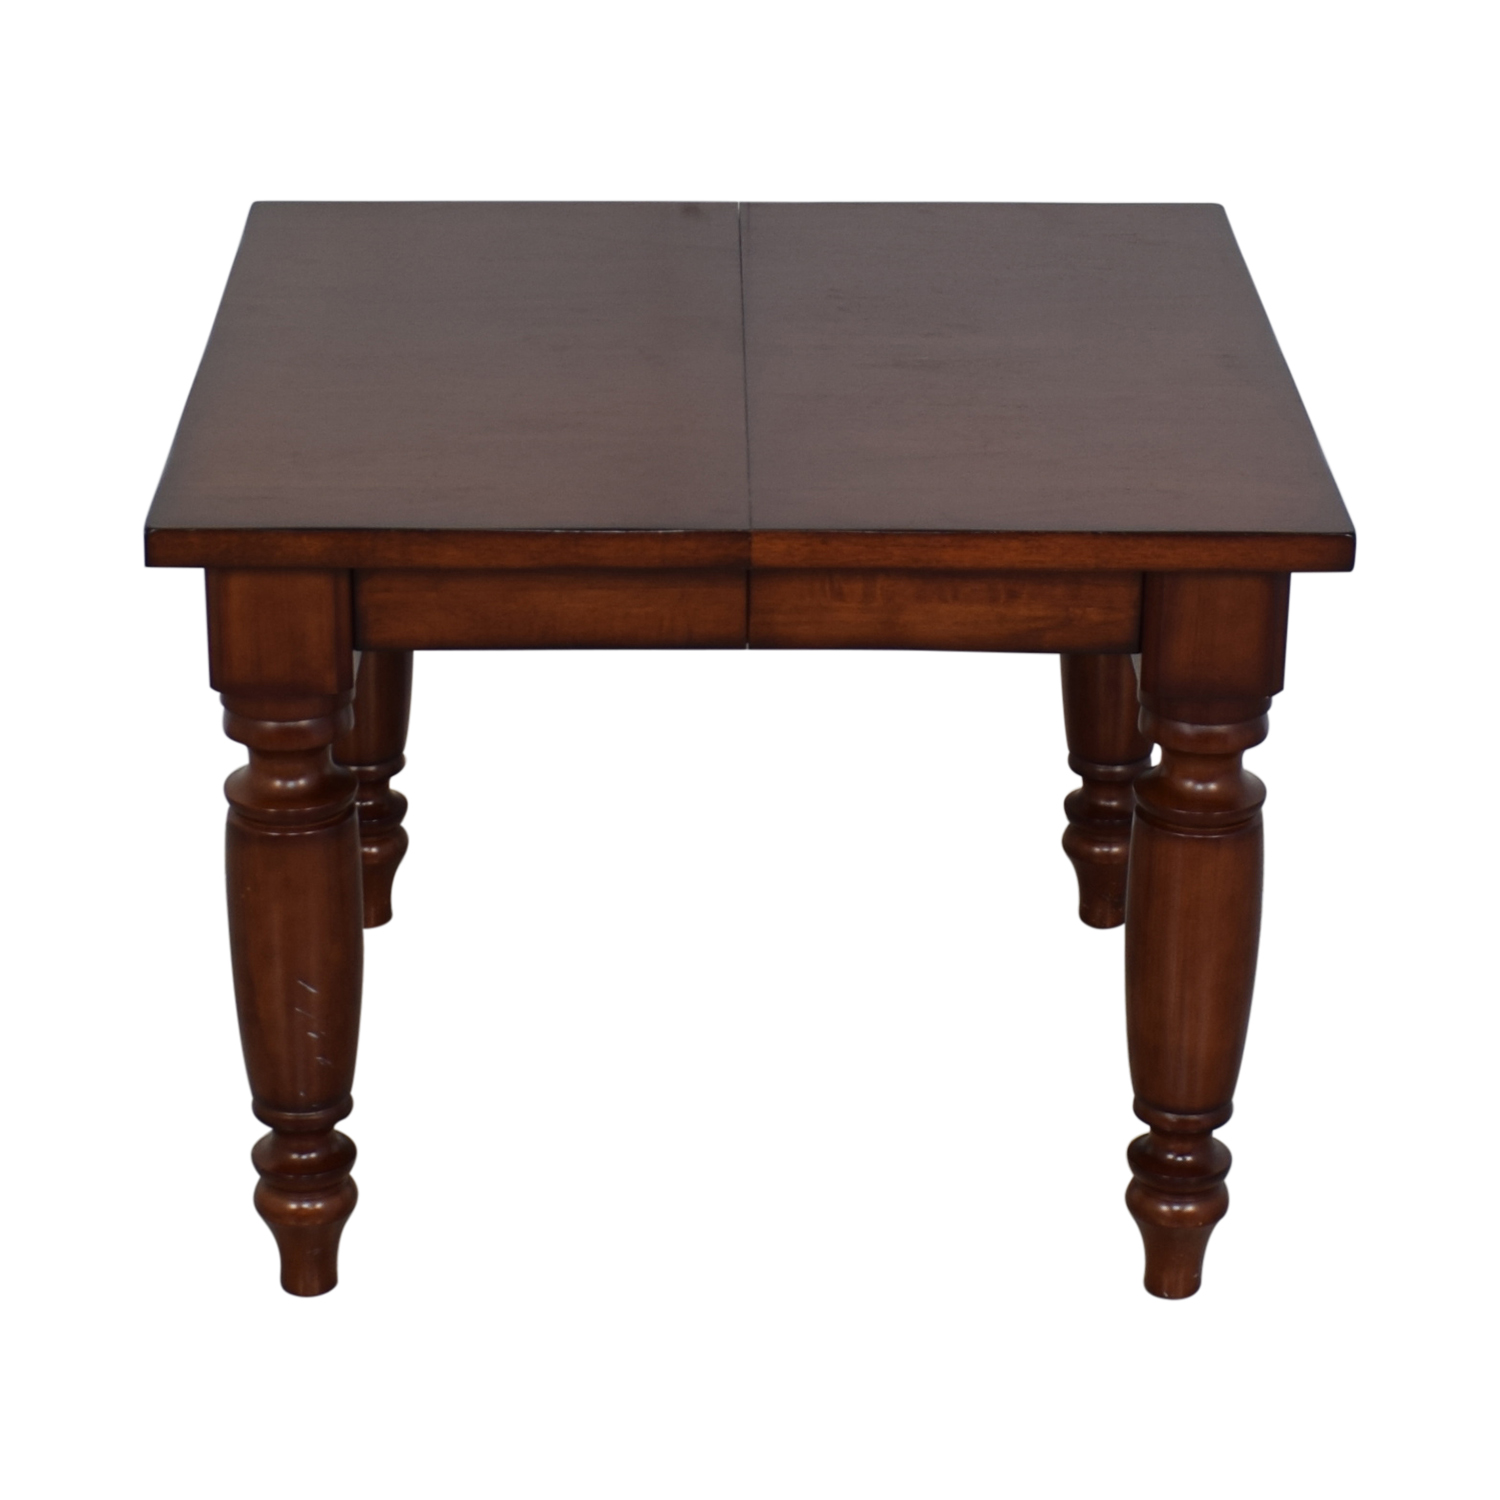 shop Pottery Barn Sumner Extending Dining Table Pottery Barn Tables